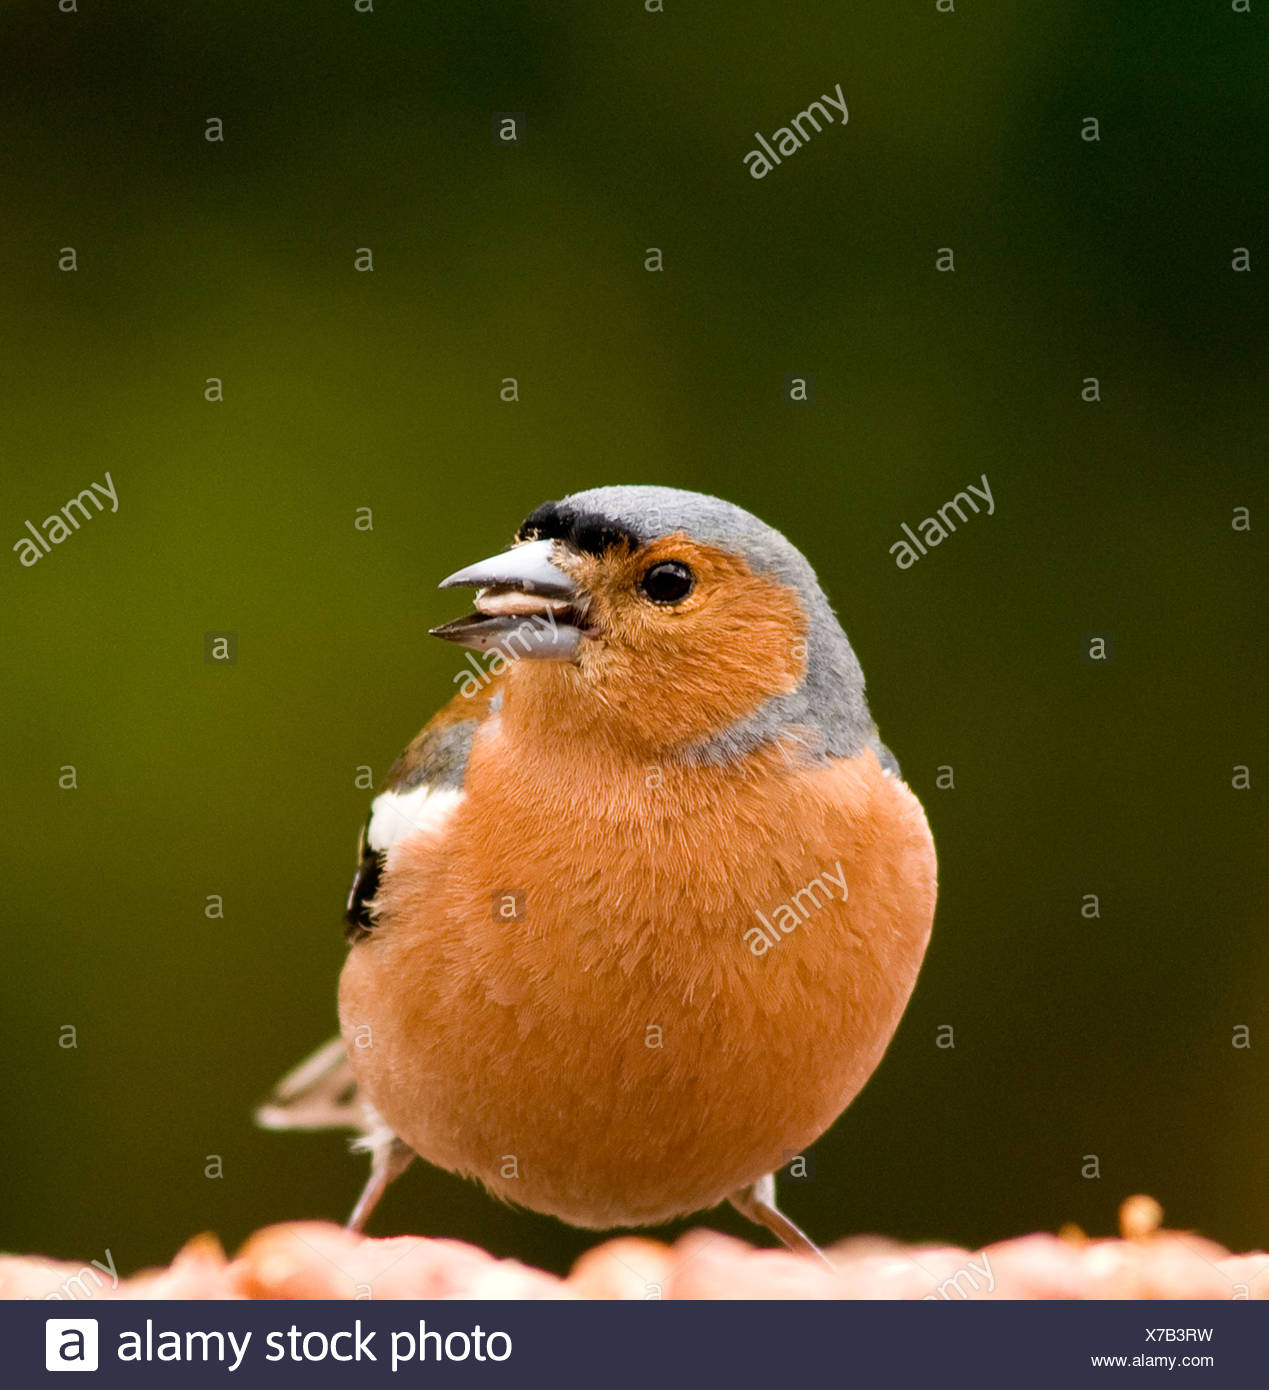 A male chaffinch on a bird table - Stock Image